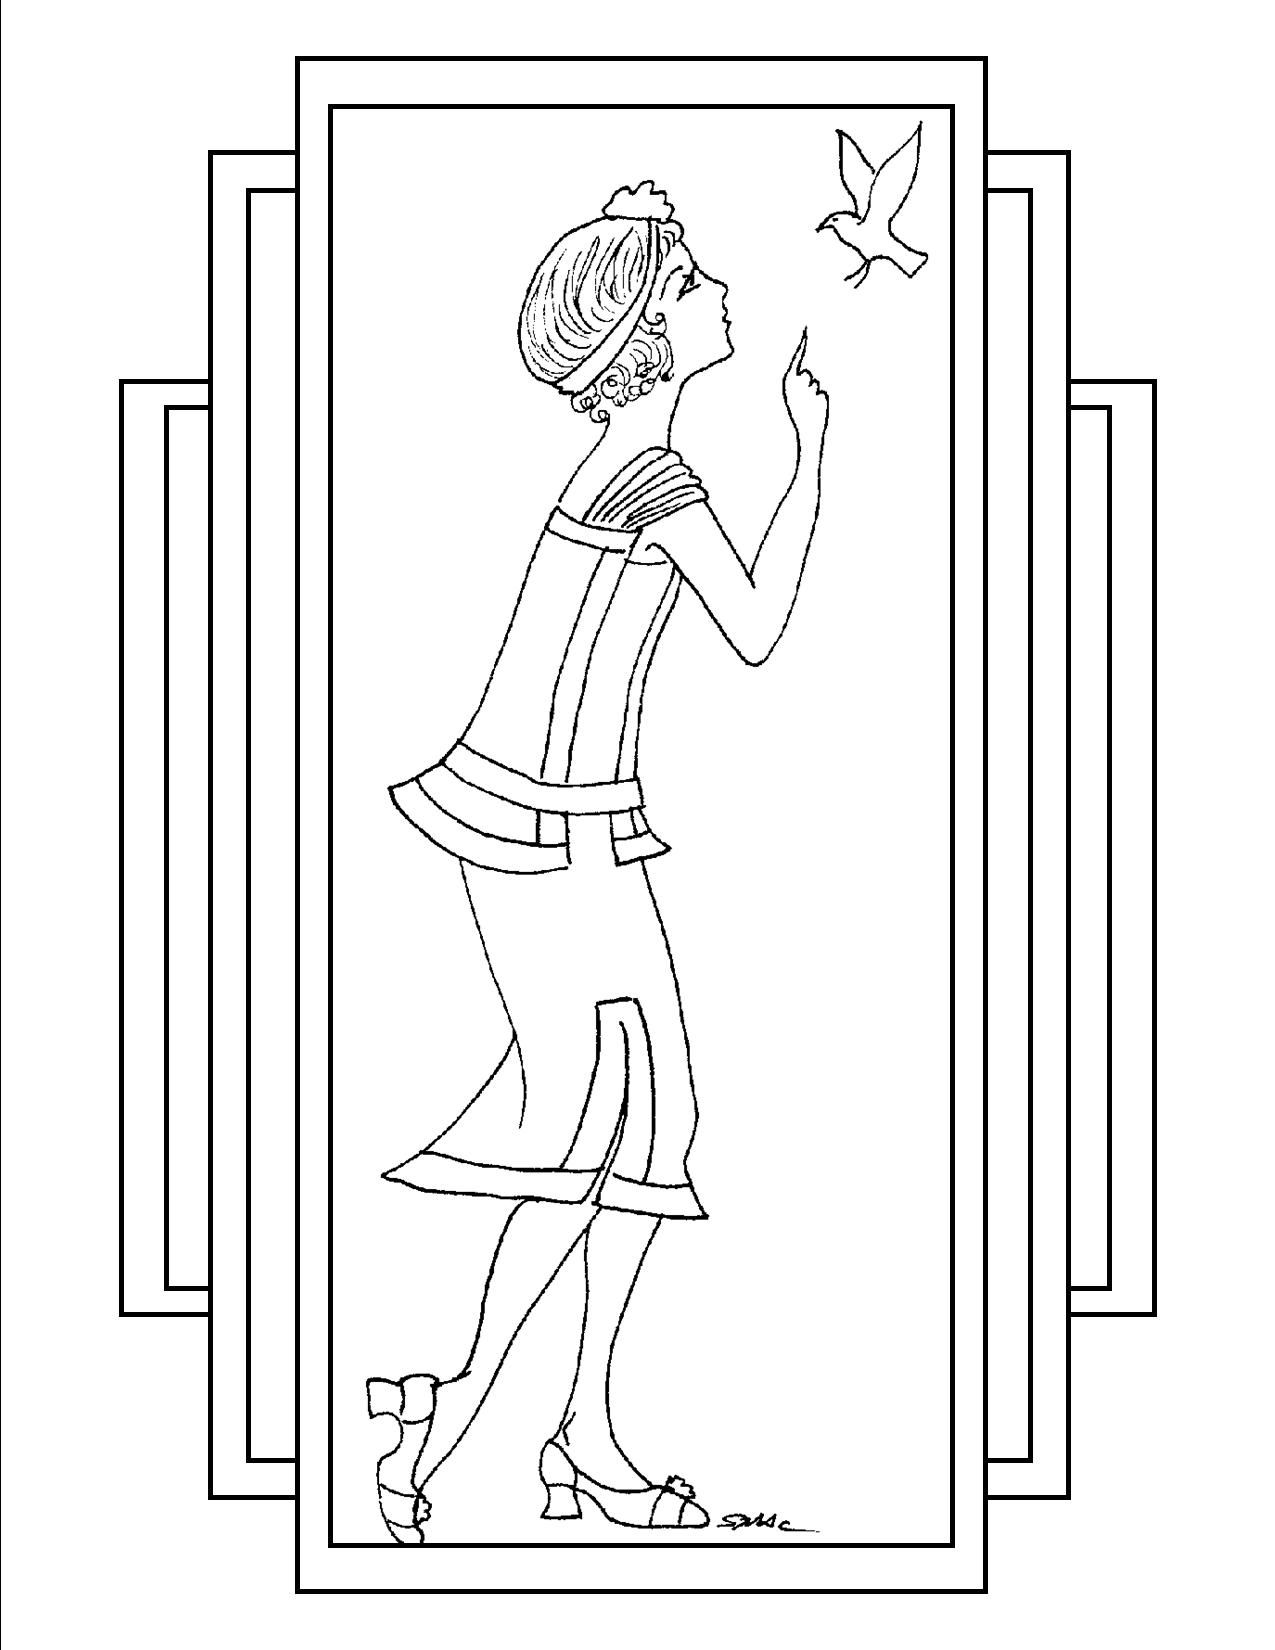 S mac coloring pages - S Mac S Art Deco Coloring Page Deco Gal With Bird